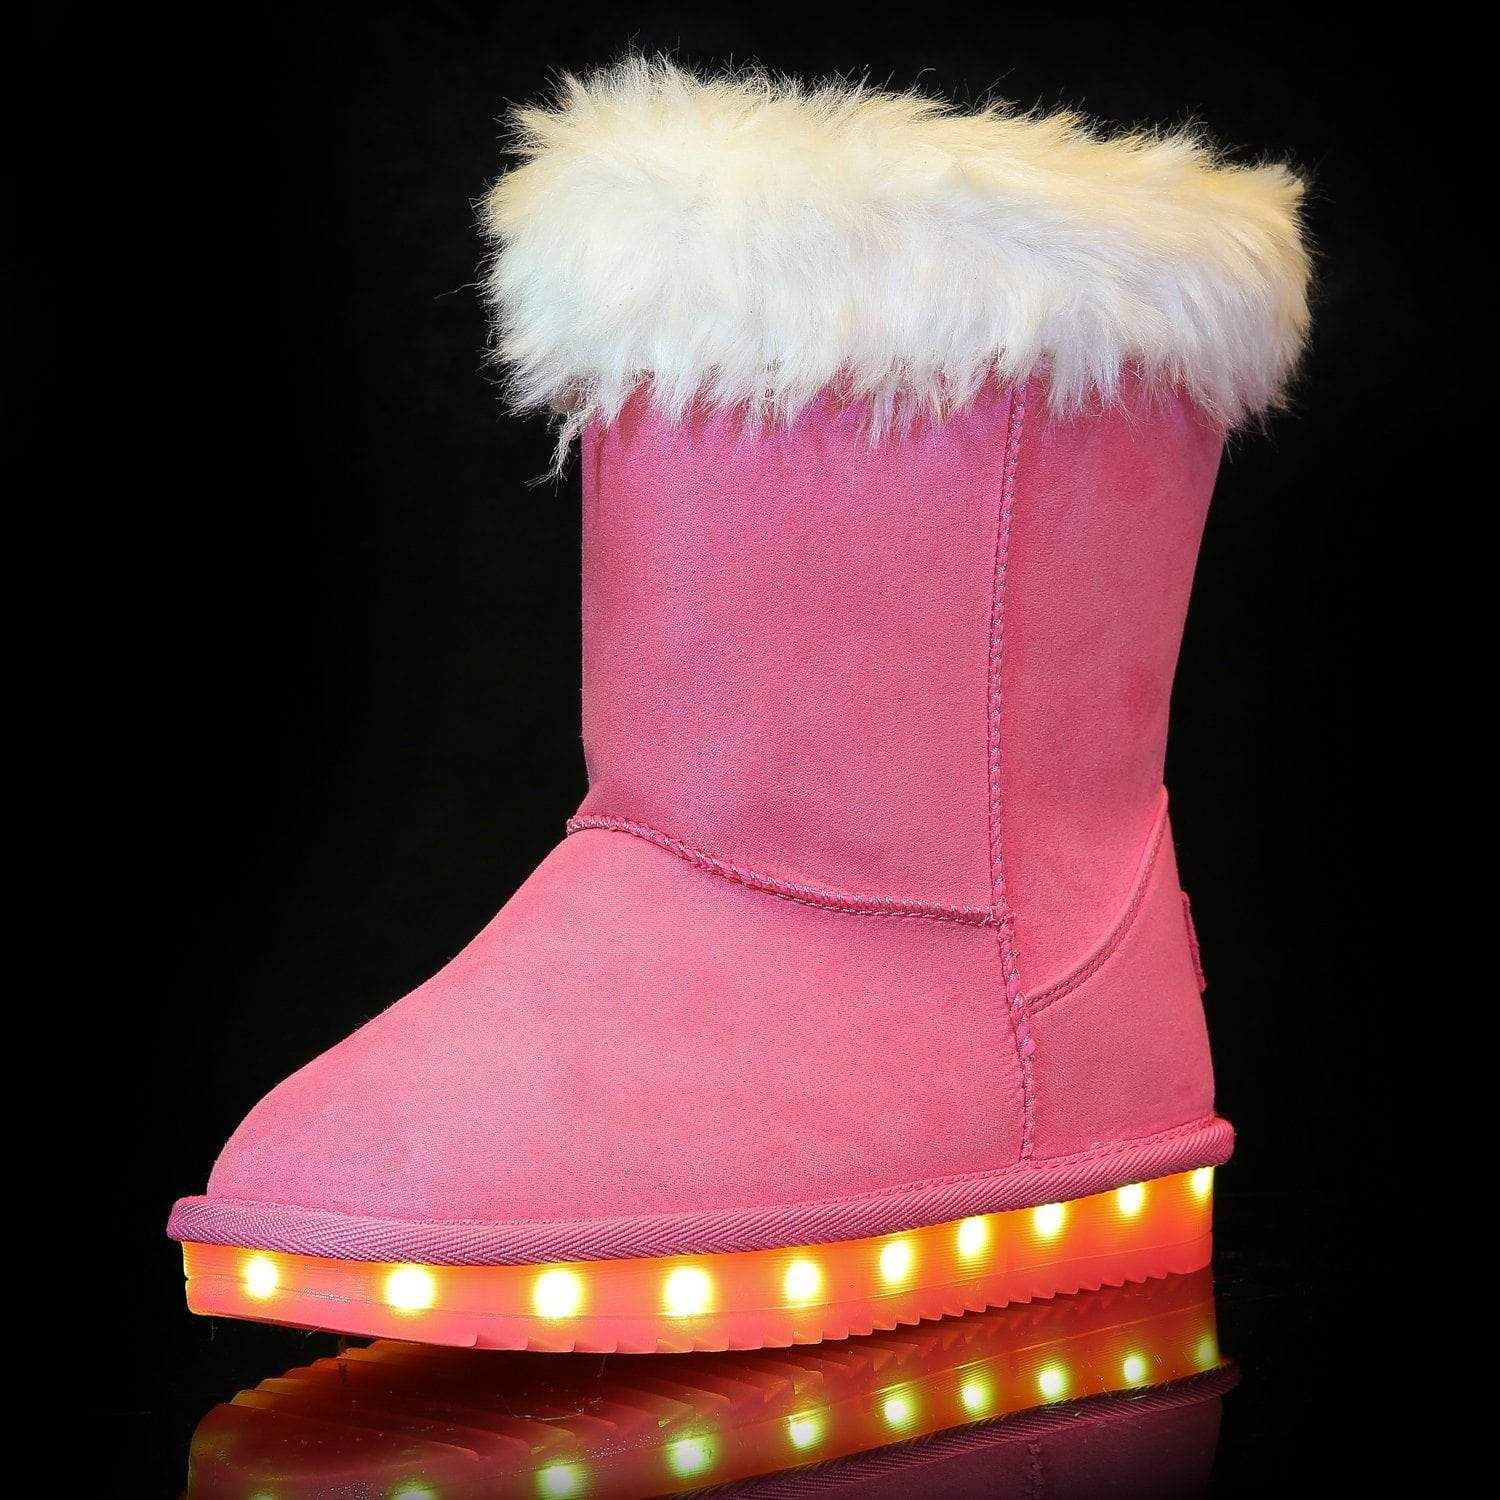 Flashez LED Footwear - Flash Wear LED Pink Calf Boots